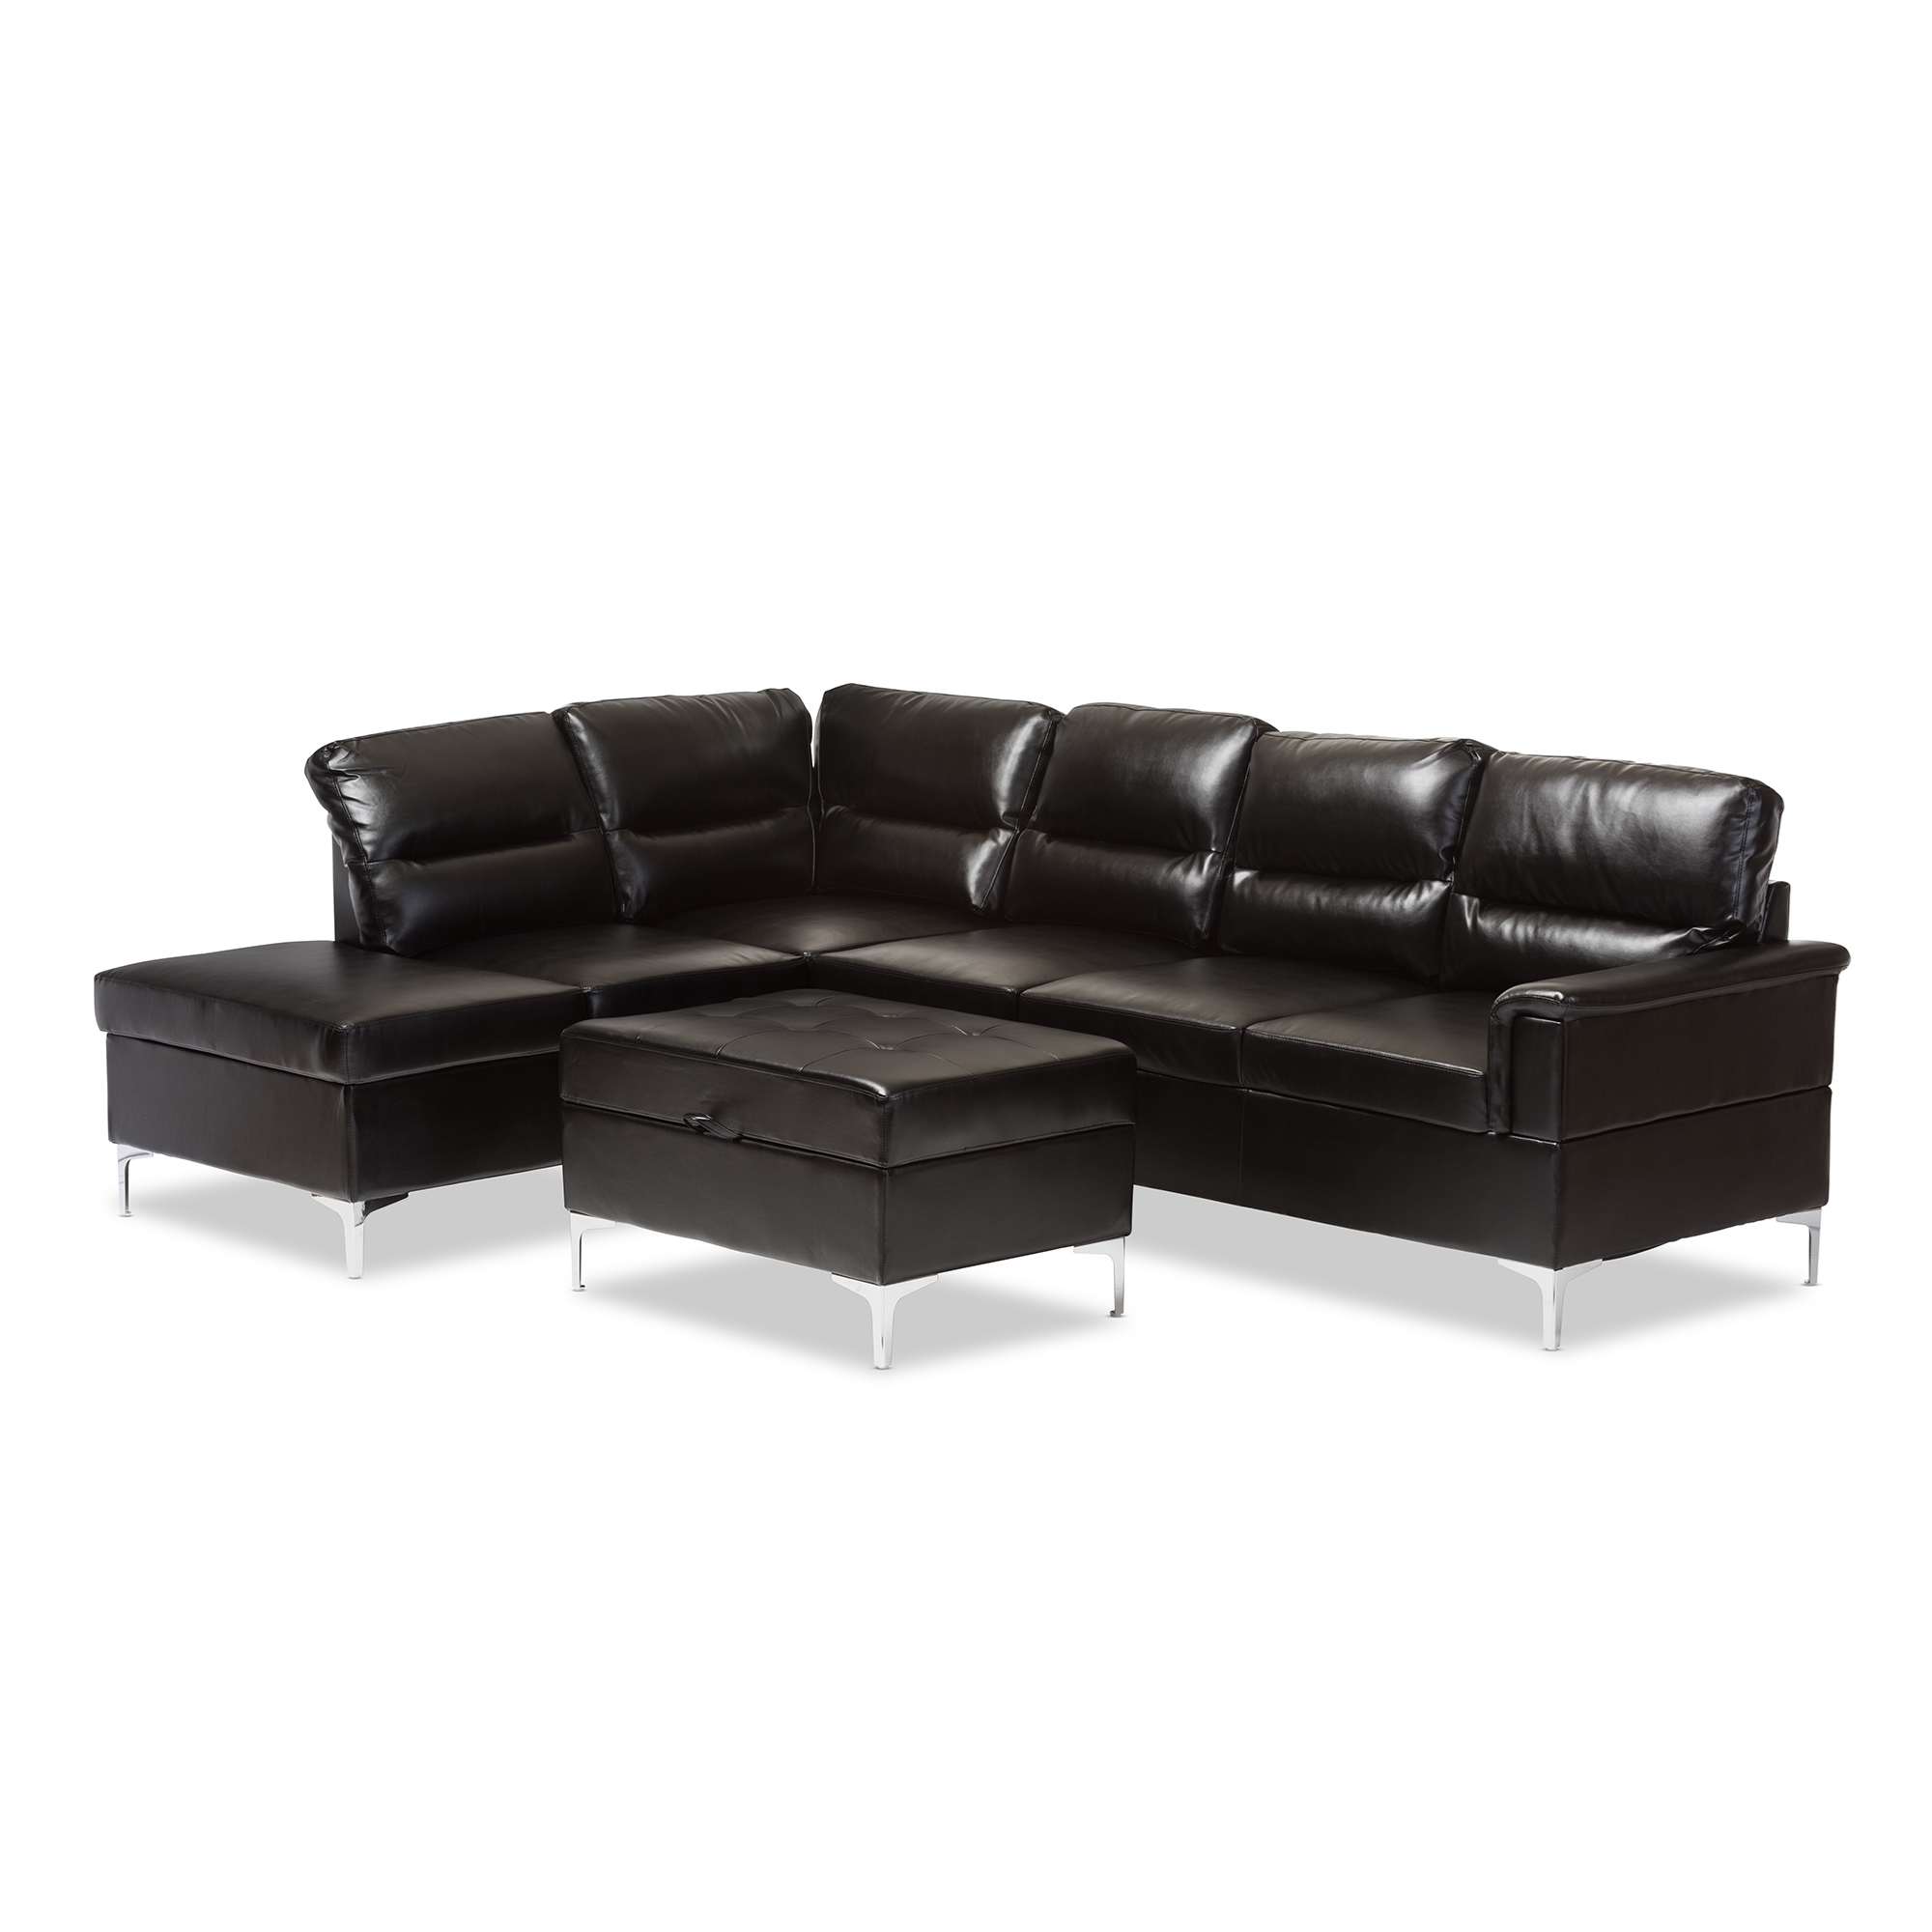 Baxton Studio Kinsley Modern and Contemporary Black Faux Leather Upholstered 3-Piece Sectional Sofa with Storage Ottoman Large Set  sc 1 st  Baxton Studio Outlet : three piece sectional - Sectionals, Sofas & Couches